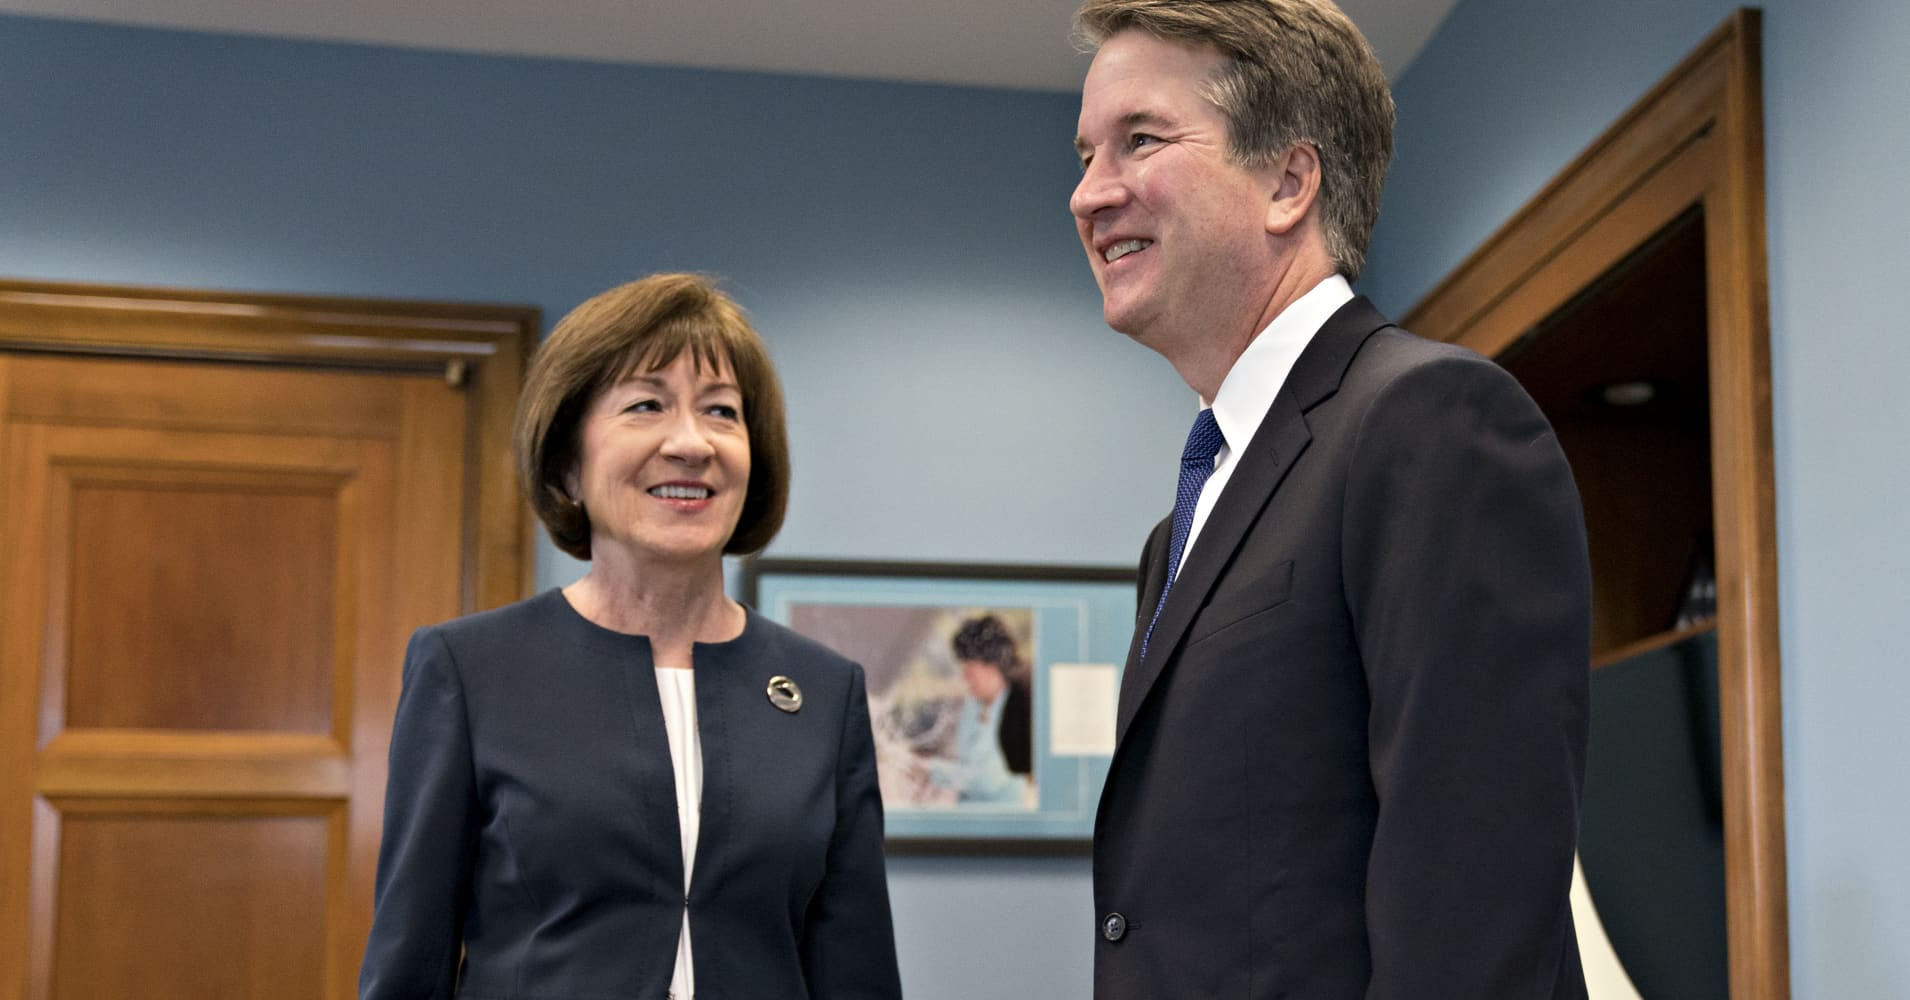 Brett Kavanaugh told Sen. Susan Collins Roe v. Wade is settled law